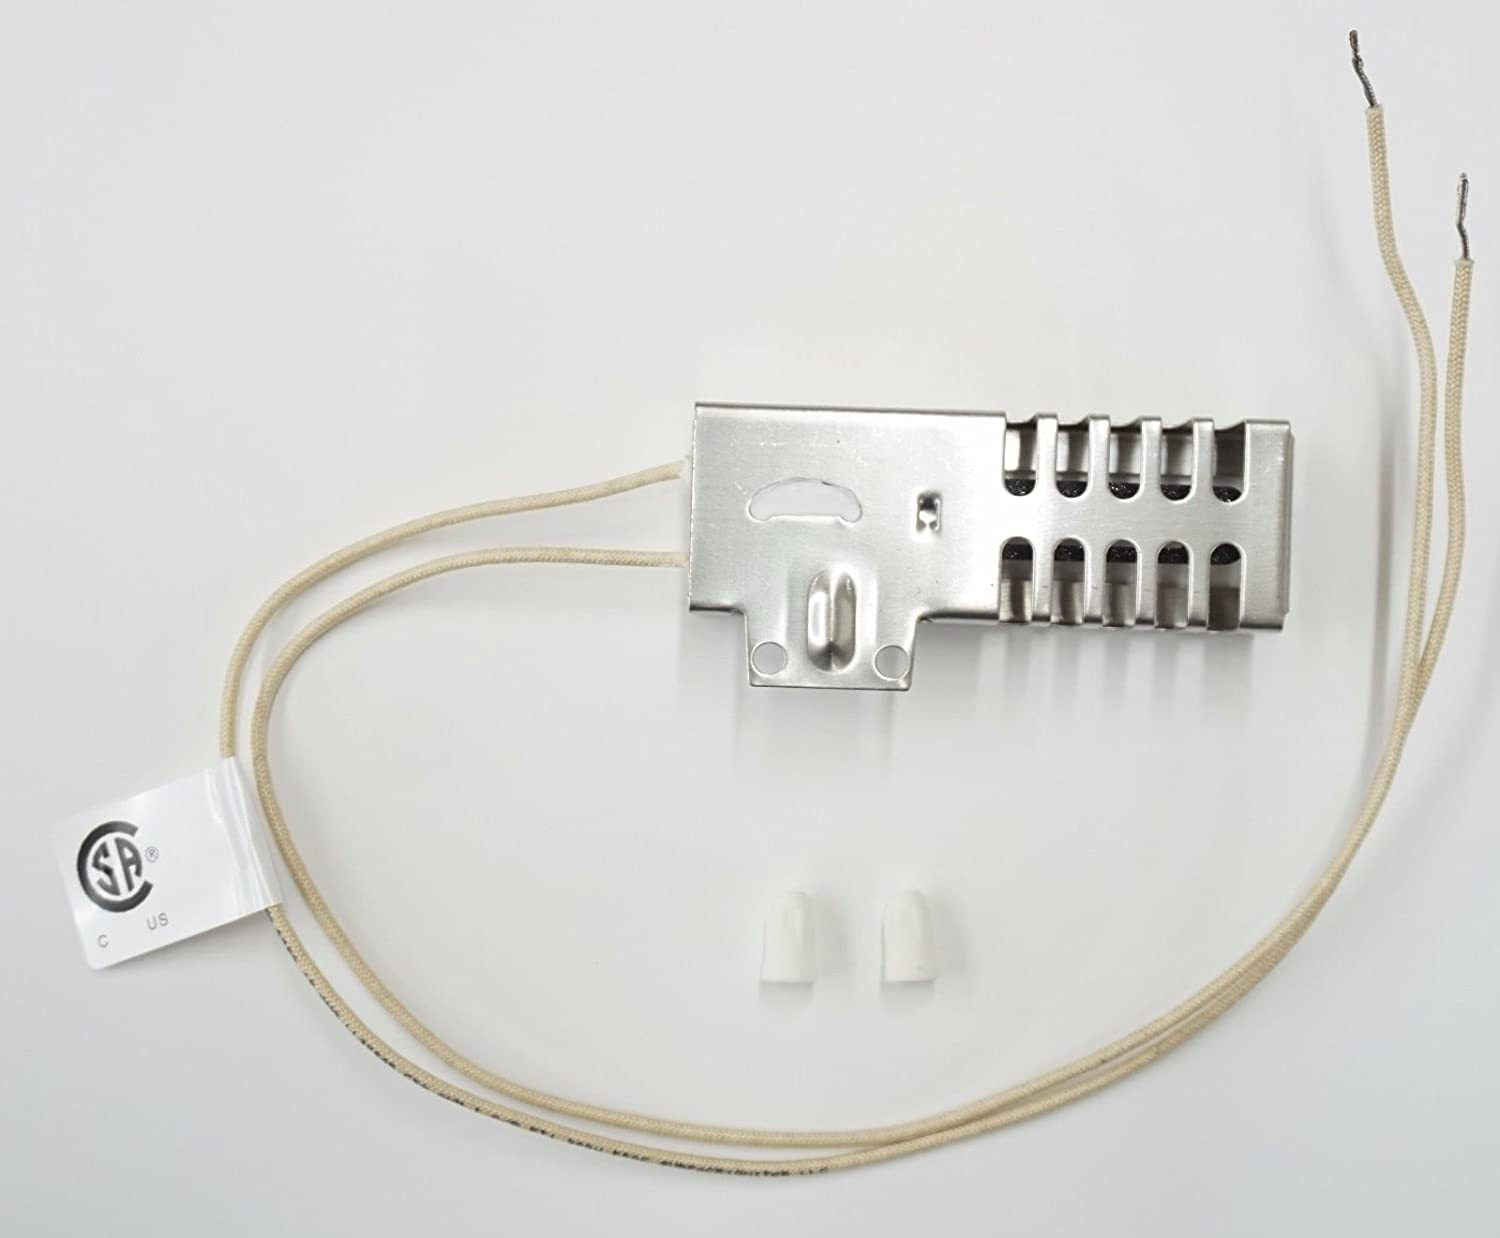 (Rb) Gases Oven Igniter für Frigidaire, Tappan, 5303935066, Ap2150412, Ps470129